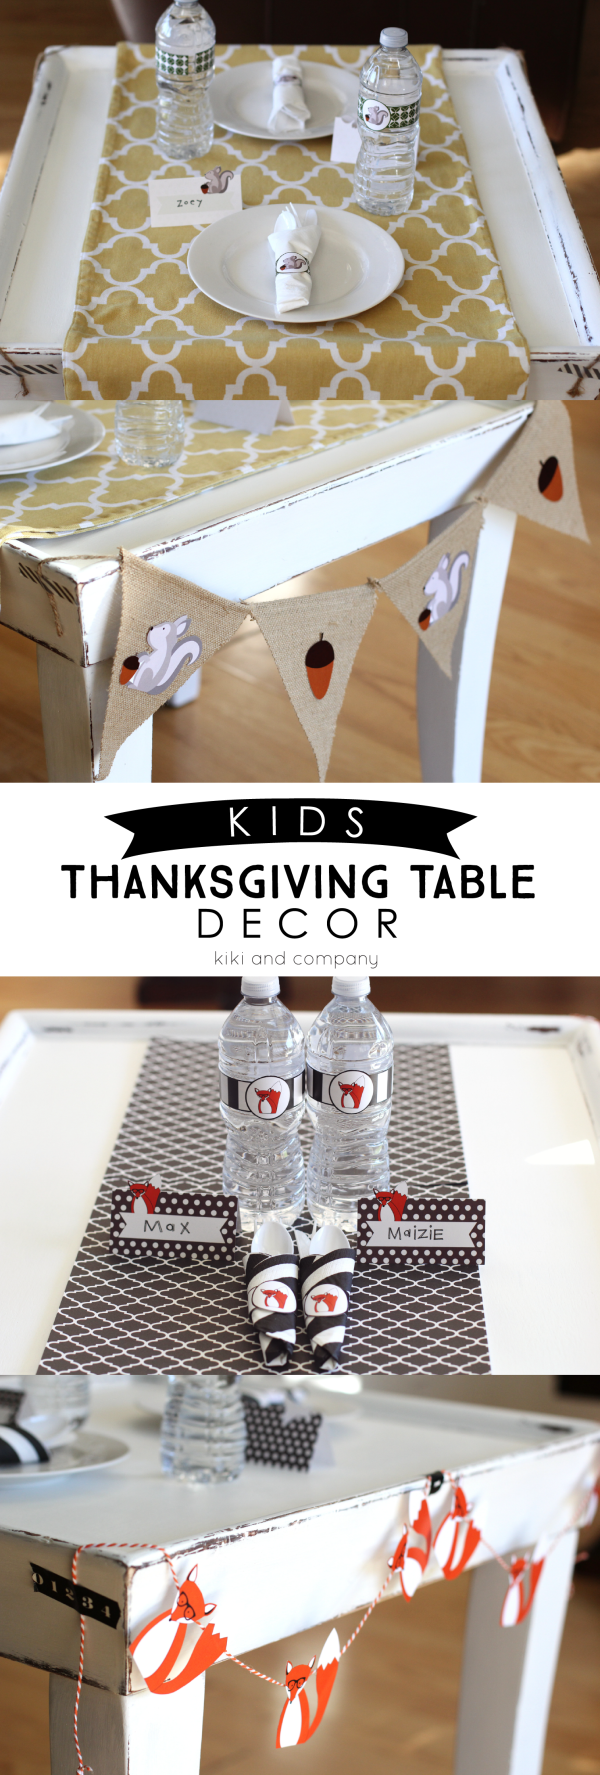 Kids Thanksgiving Table Decor - Super cute free printables to decorate your kids table for Thanksgiving. Print the water bottle labels, place cards, garland, and napkin holders. Everything you need to celebrate Thanksgiving!